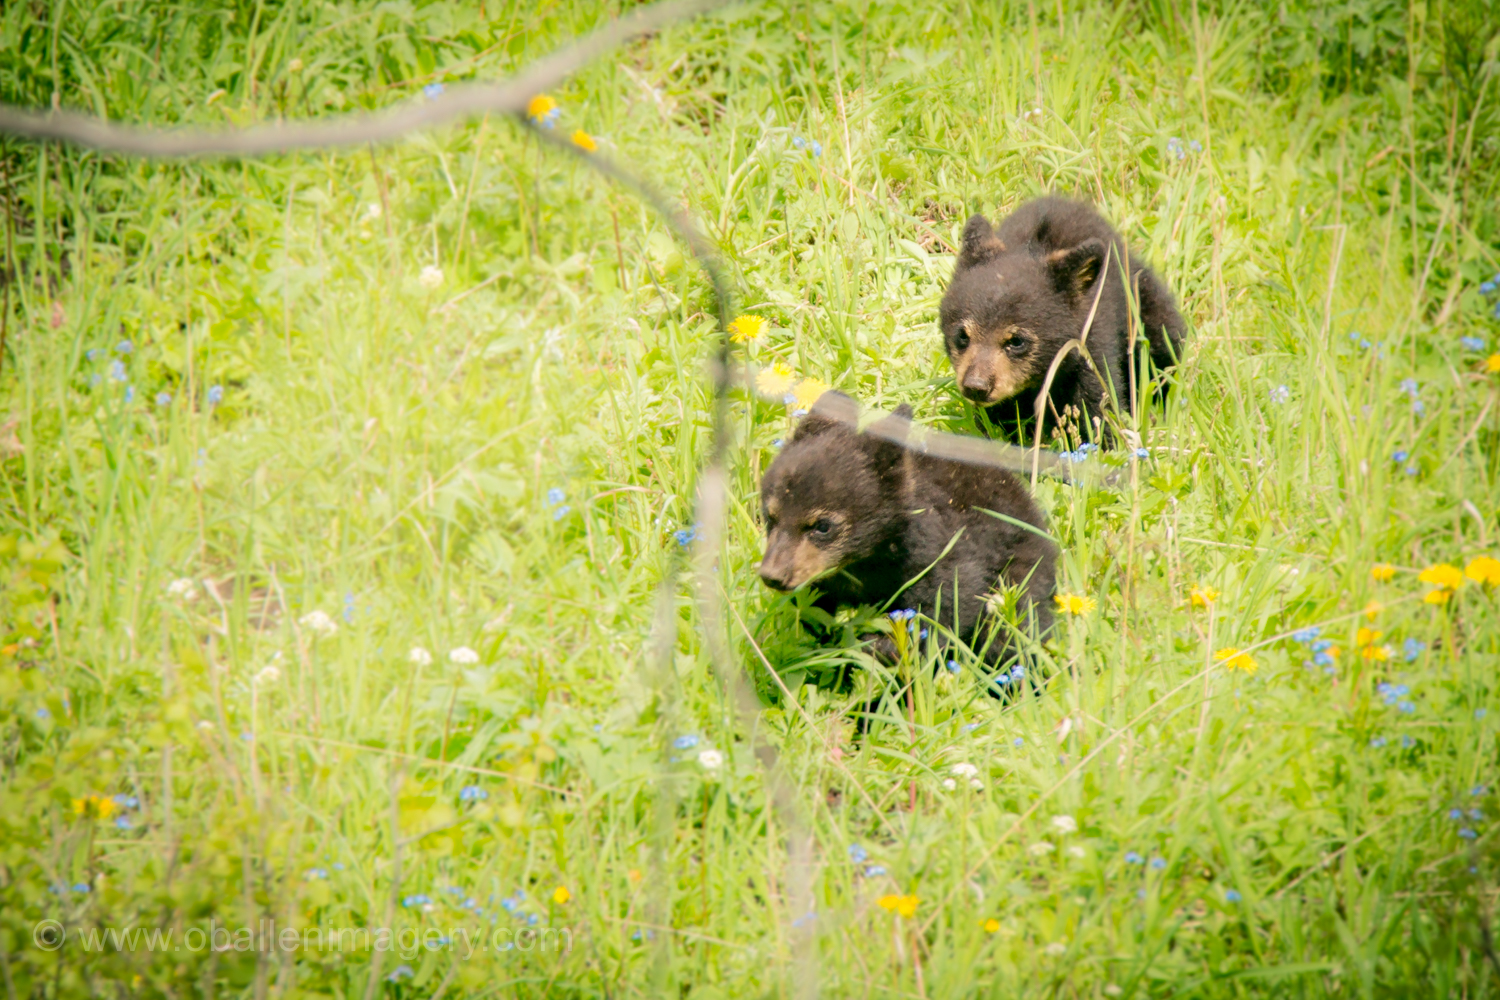 These cubs were very playful and just enjoyed the day, sun, and time with each other and mom.